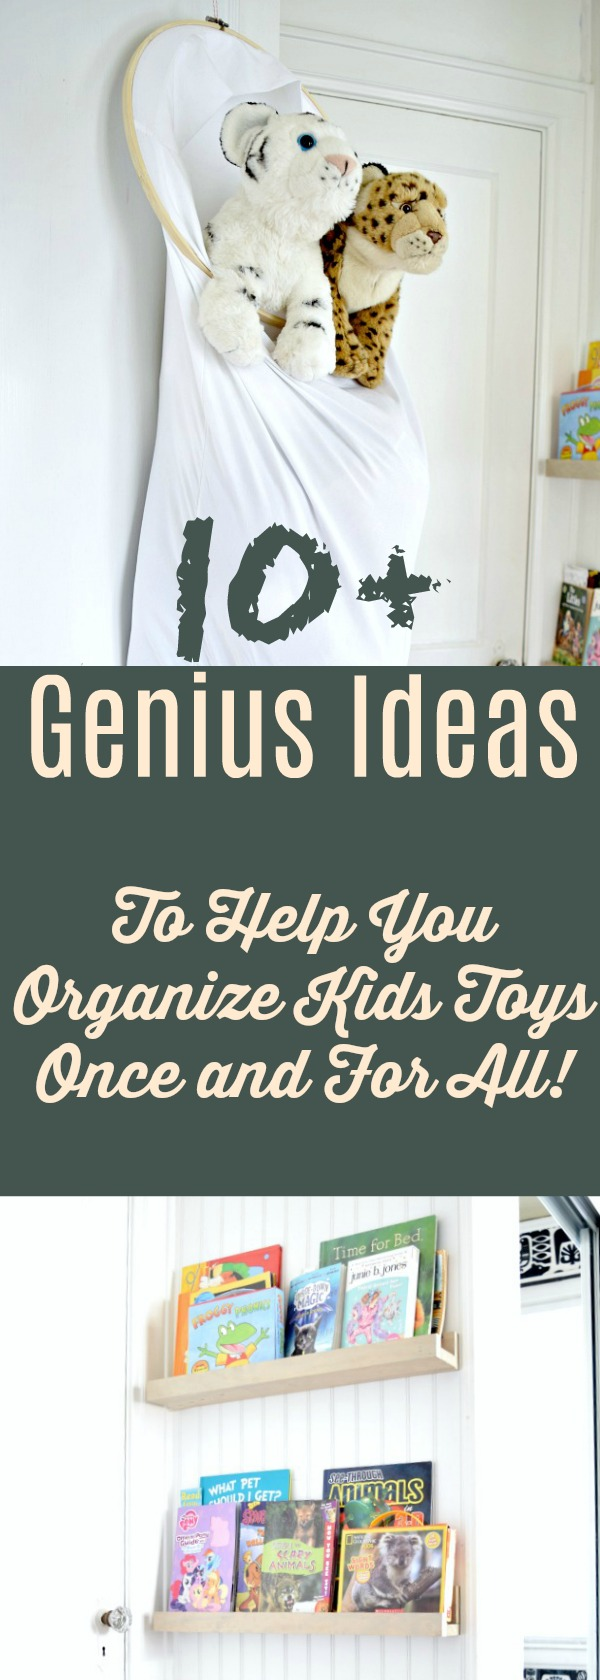 10+ Genius ideas to help you organize your kids toys once and for all. Organize books, toys, puzzles, stuffed animals, board games and more! #organize #organization #organizekidstoys #getorganized #konmari #toyorganization